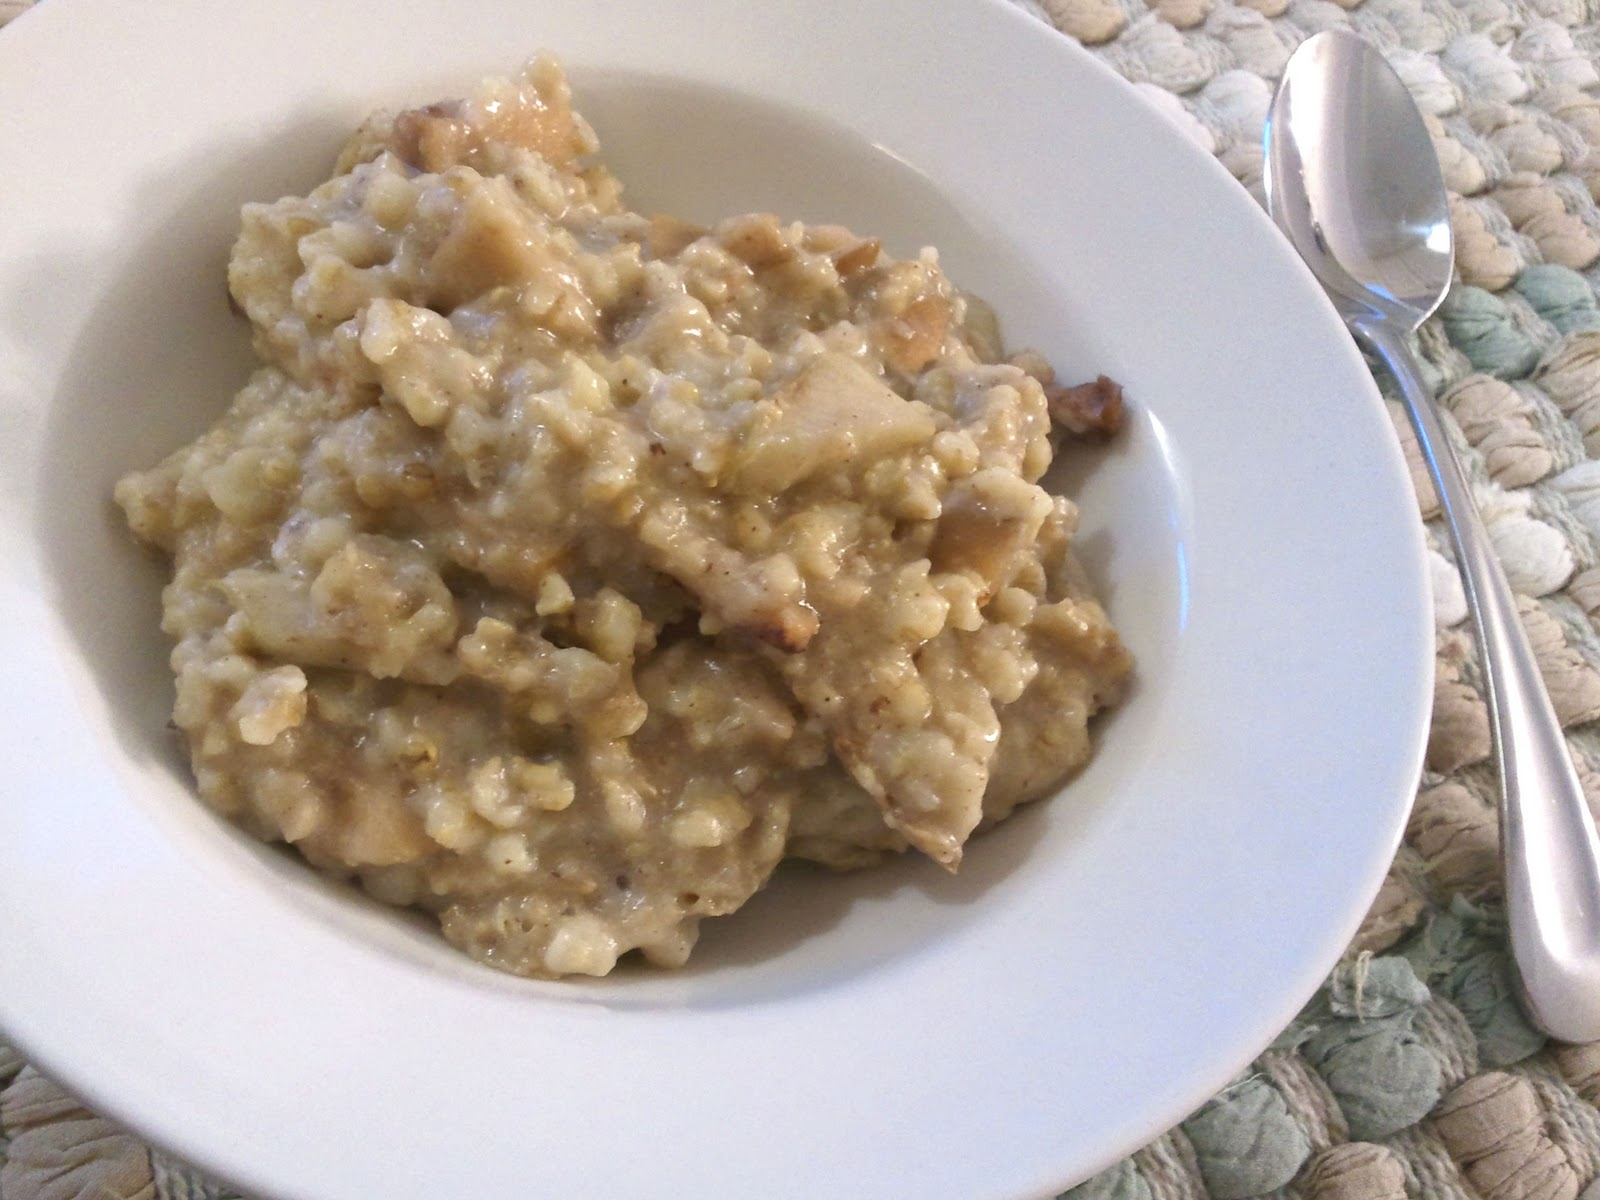 A Busy Mom's Slow Cooker Adventures: Apple Cinnamon Oatmeal